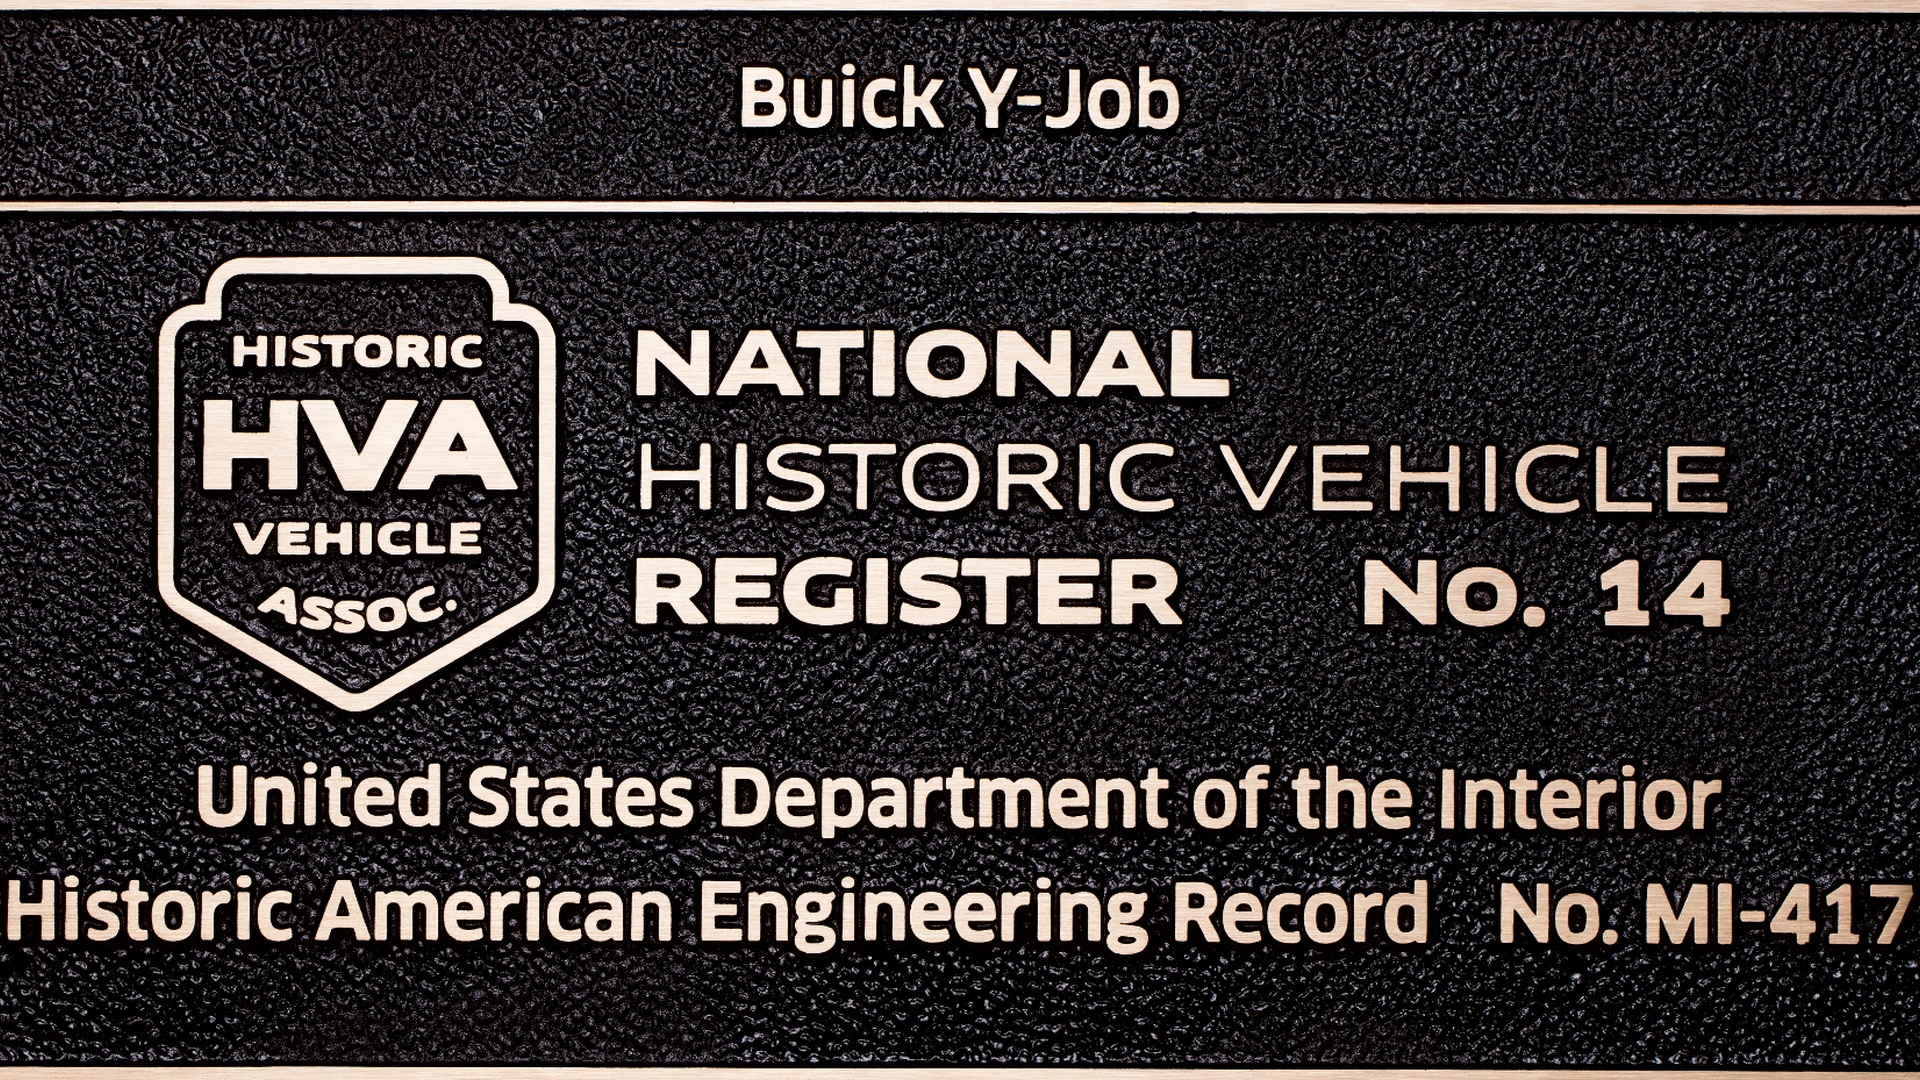 Buick Y-Job, courtesy of Historic Vehicle Association